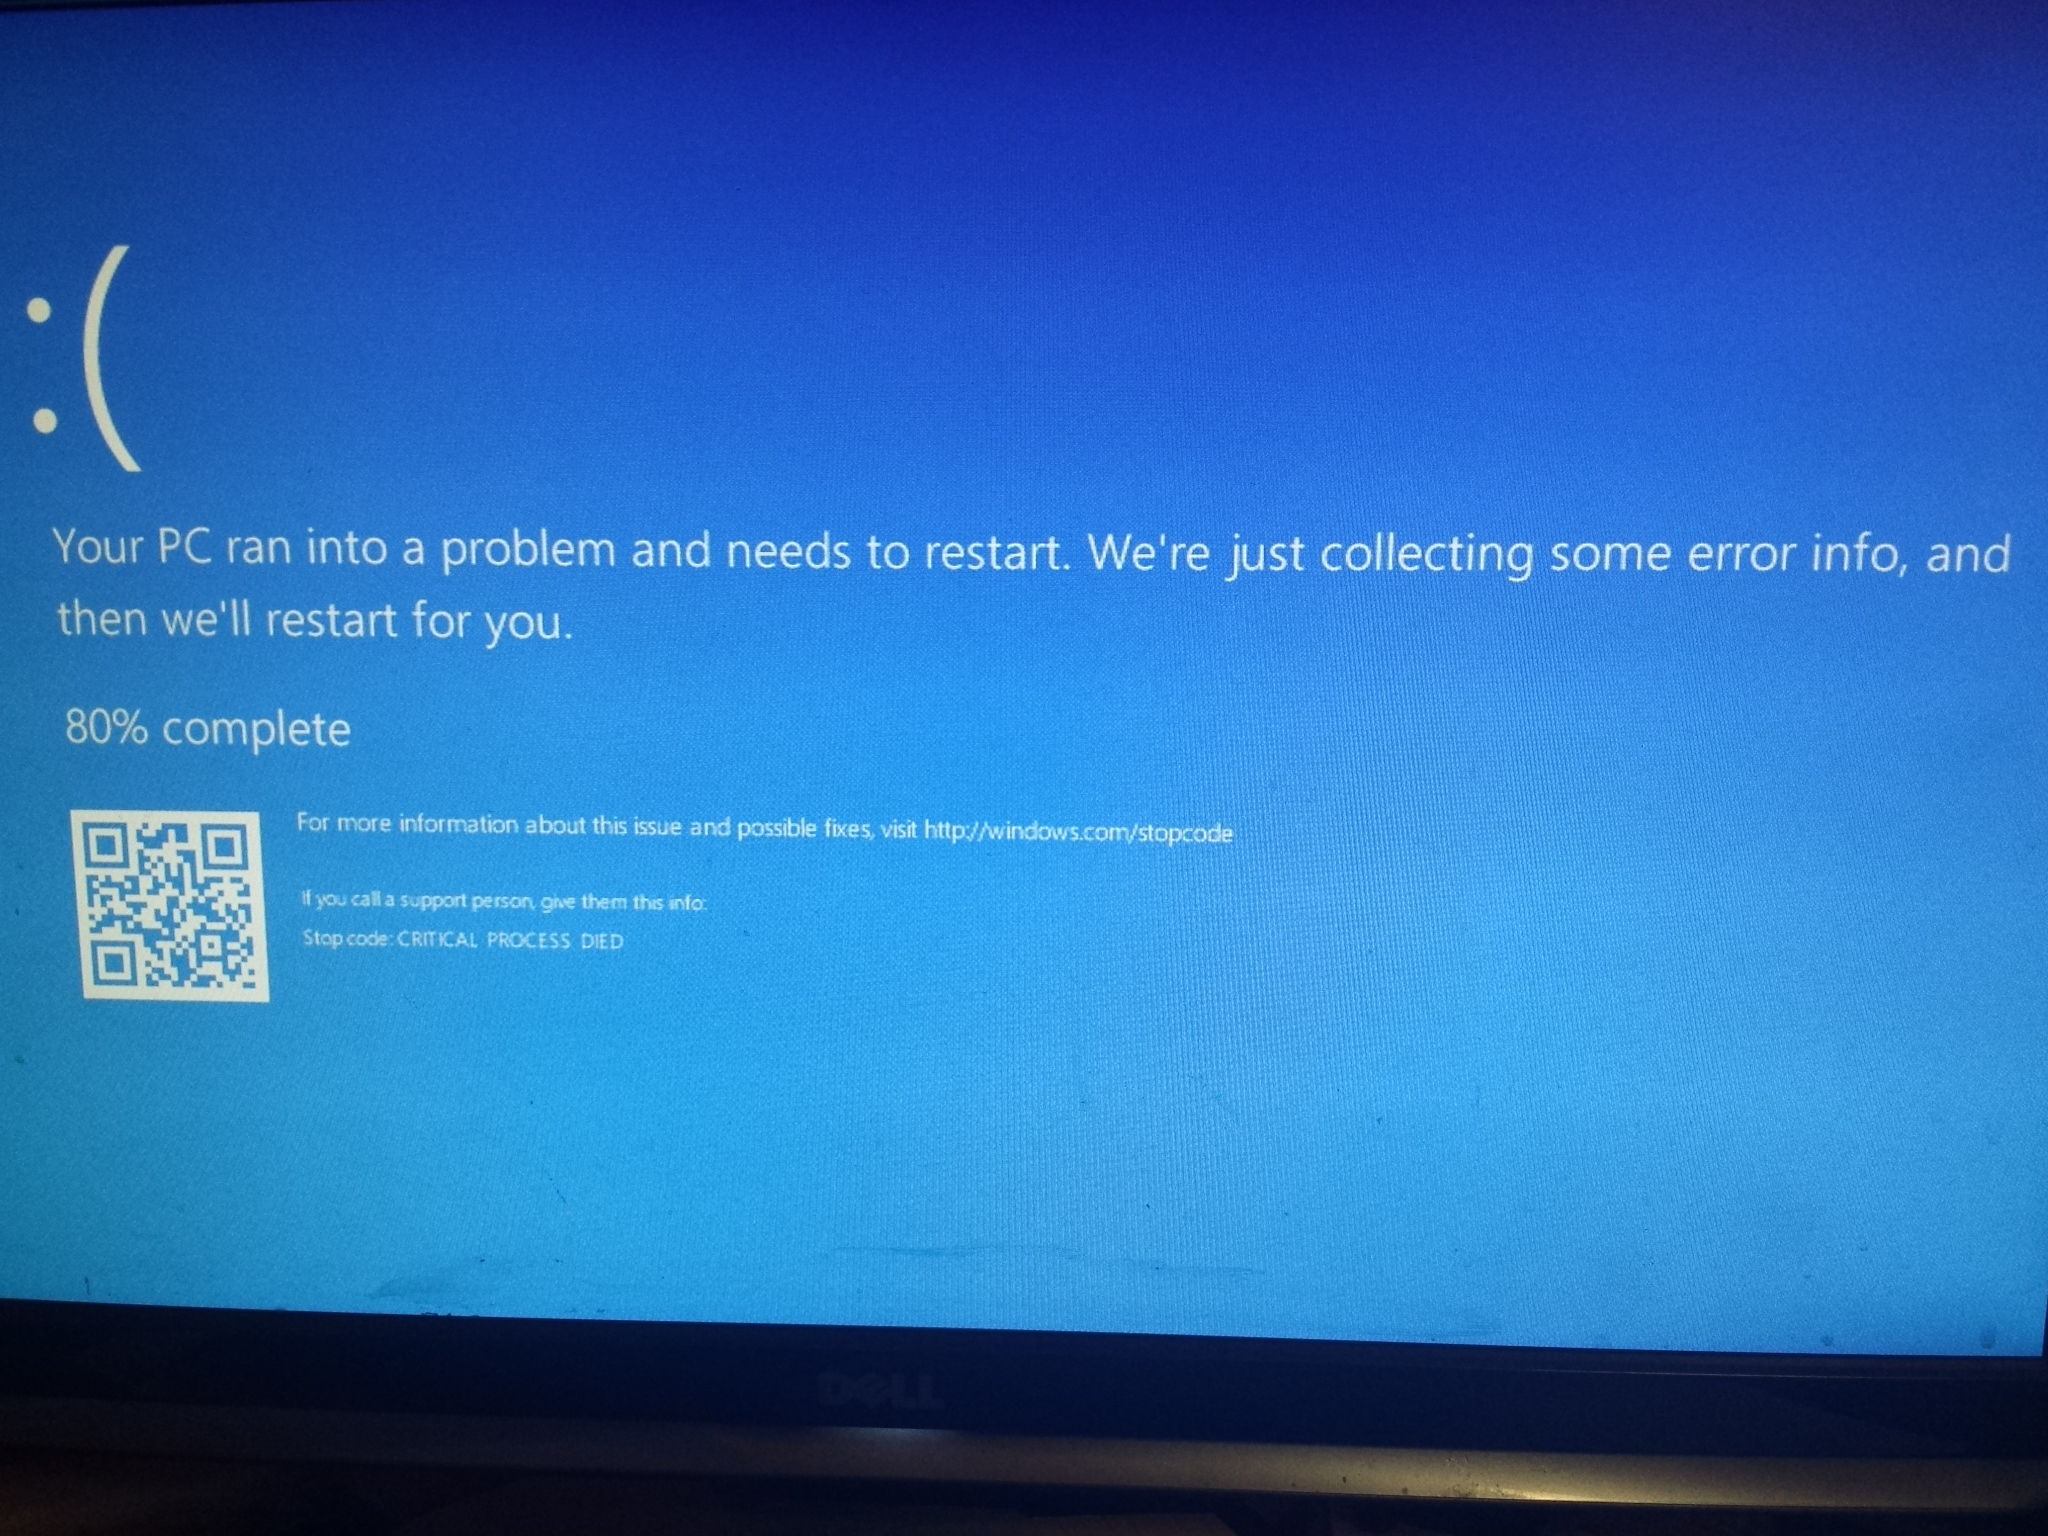 Solved] Need help mounting a BSOD Windows 10 partition to Linux Mint